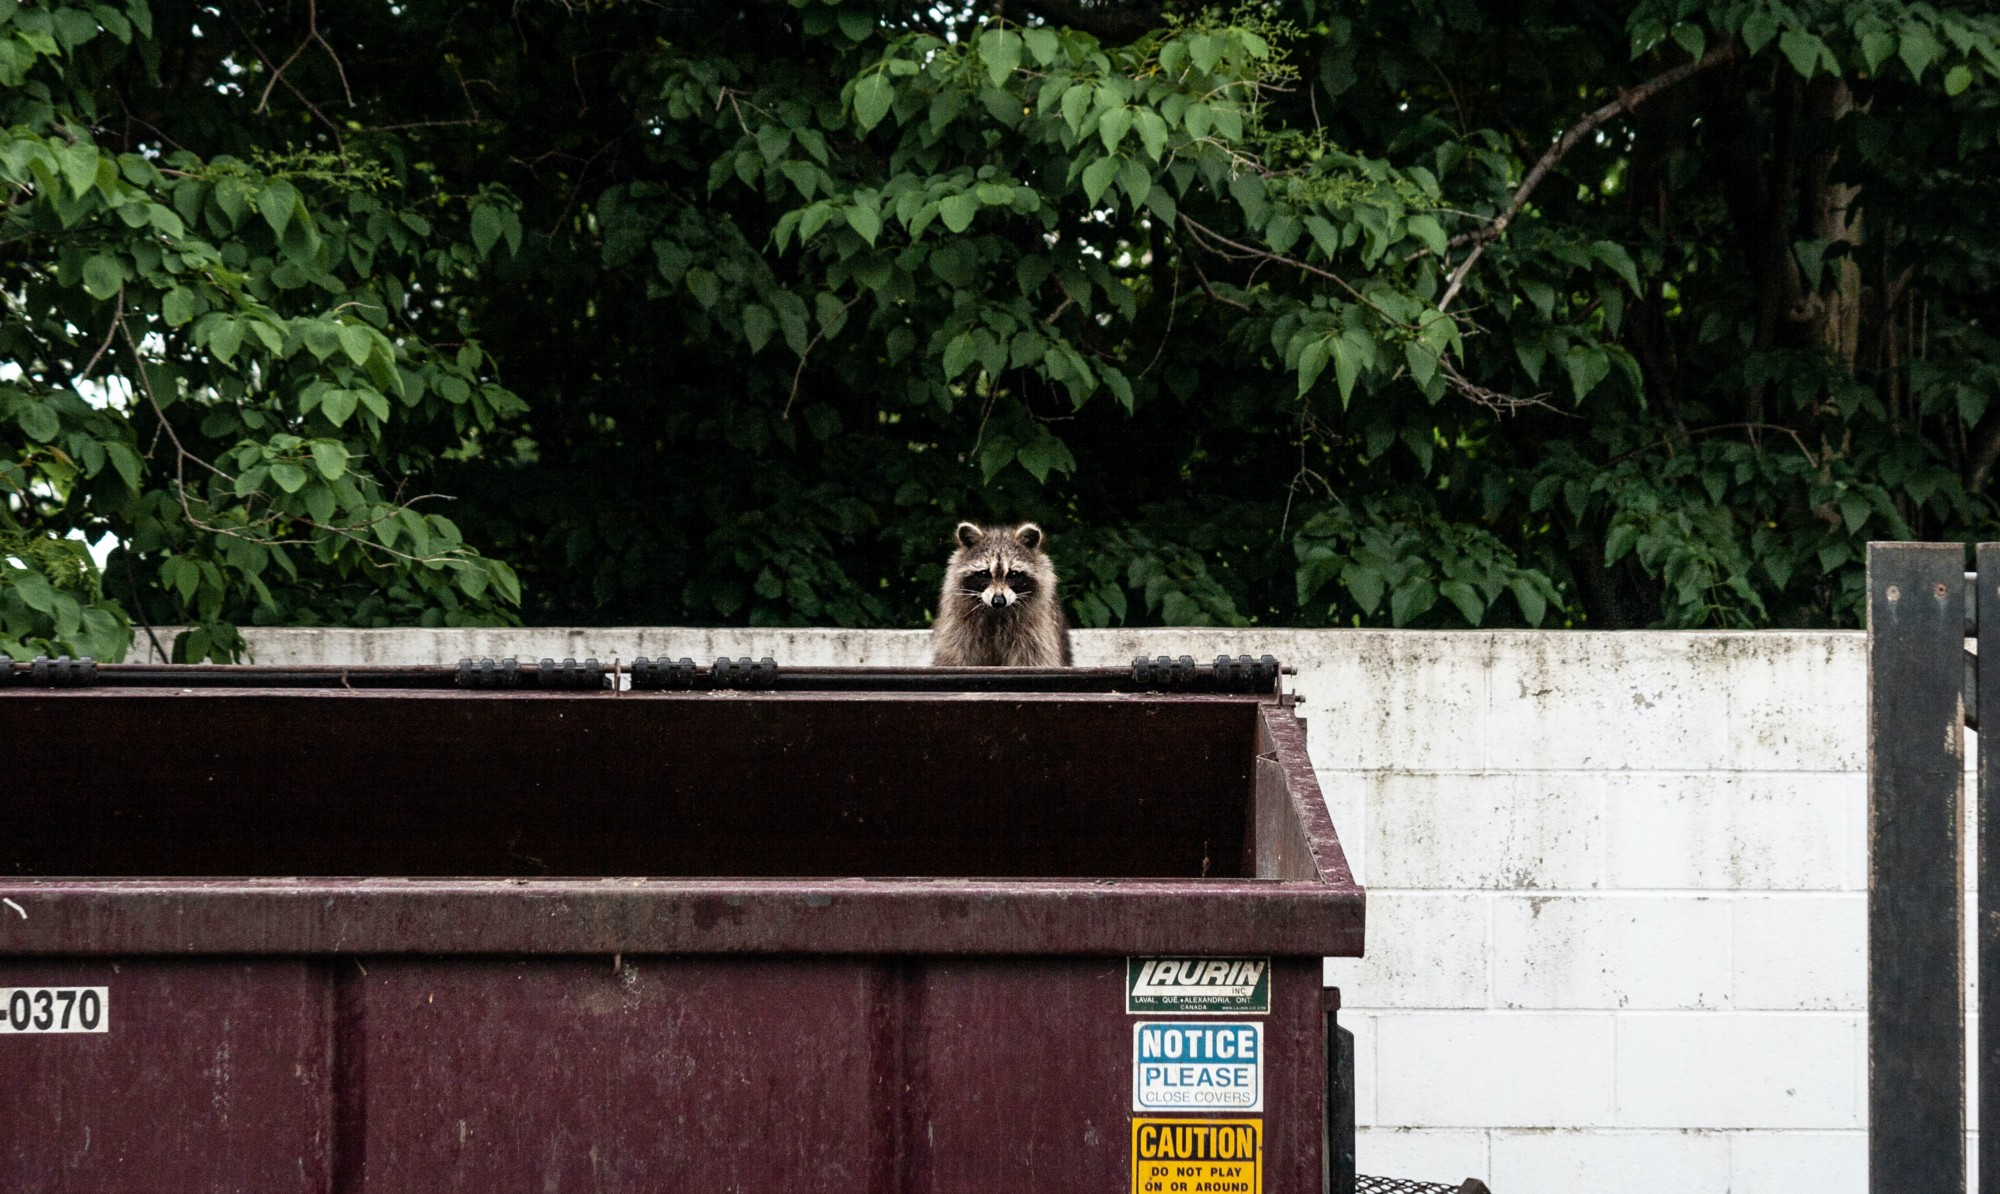 a racoon peering over a large garbage bin